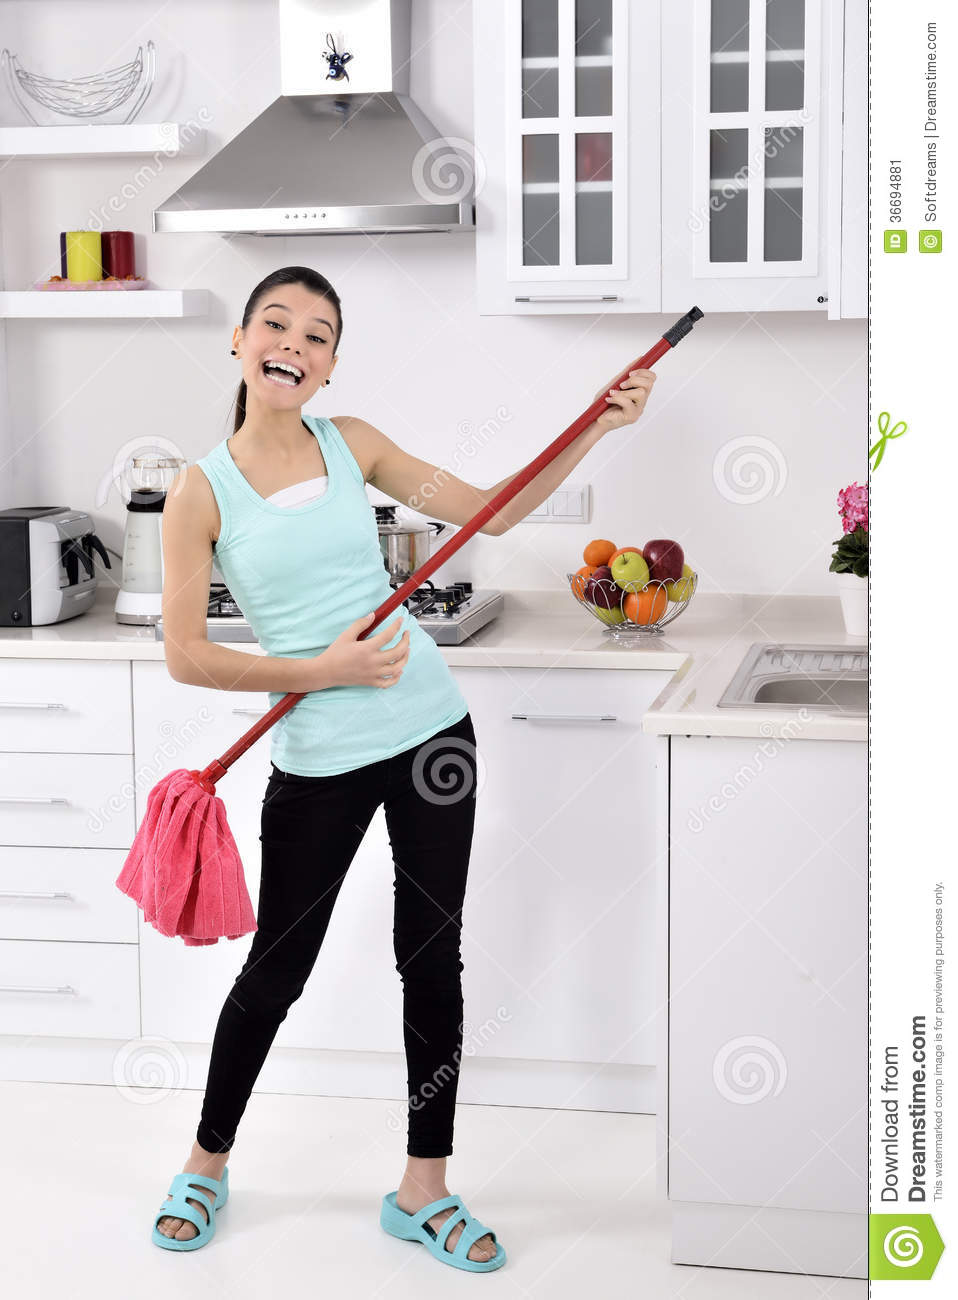 Funny Cleaning Woman In Home Stock Image - Image of funny